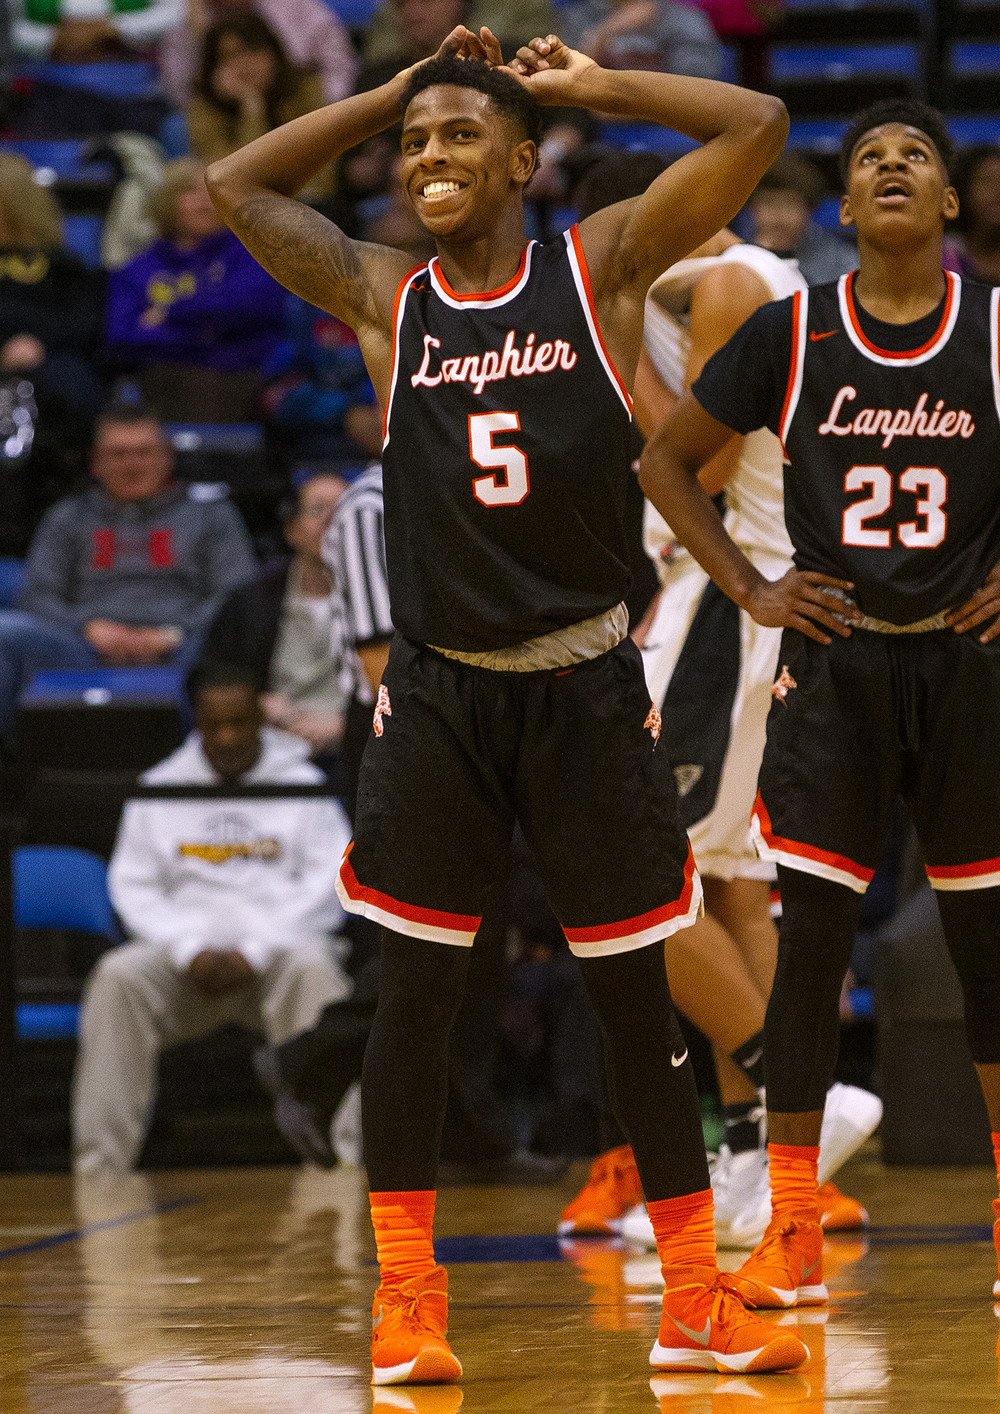 Lanphier's Xavier Bishop was all smiles as he scored a tournament record 50 points against Sacred Heart-Griffin during the City Tournament at the Prairie Capital Convention Center Friday, Jan. 22, 2016. Ted Schurter/The State Journal-Register